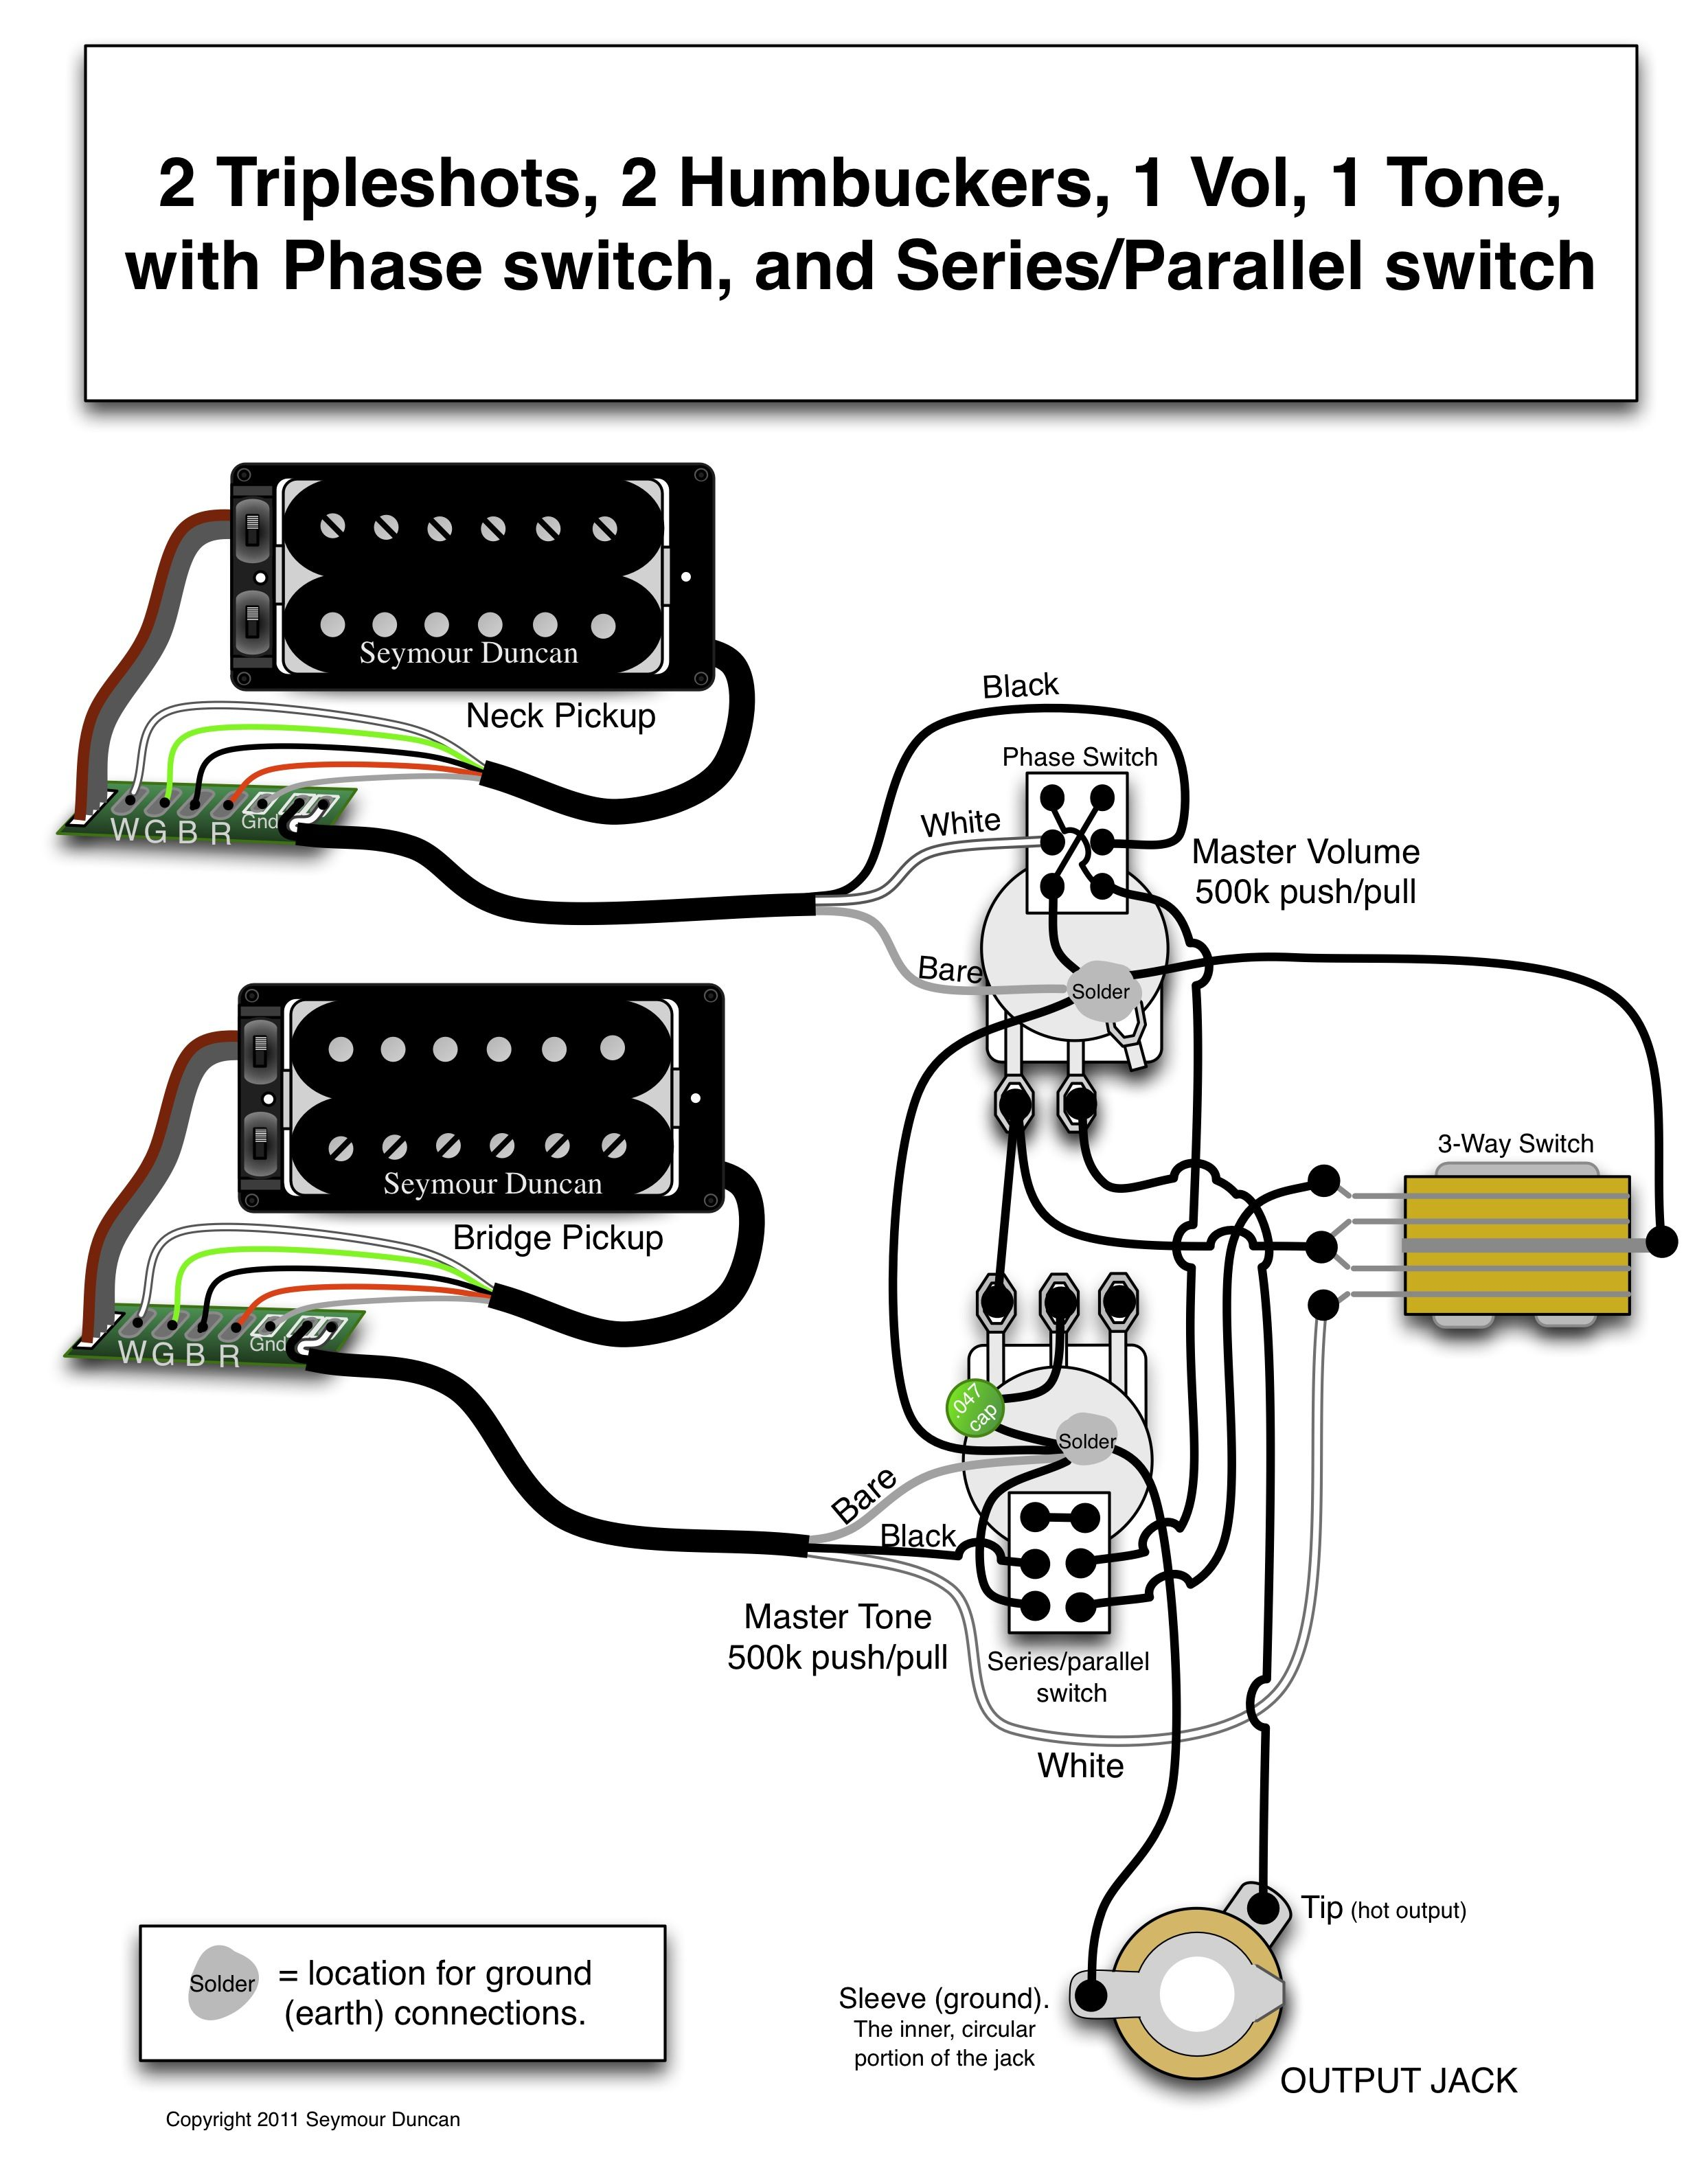 seymour duncan wiring diagram 2 triple shots 2 humbuckers 1 vol rh pinterest co uk seymour duncan humbucker wiring strat seymour duncan humbucker wiring diagram